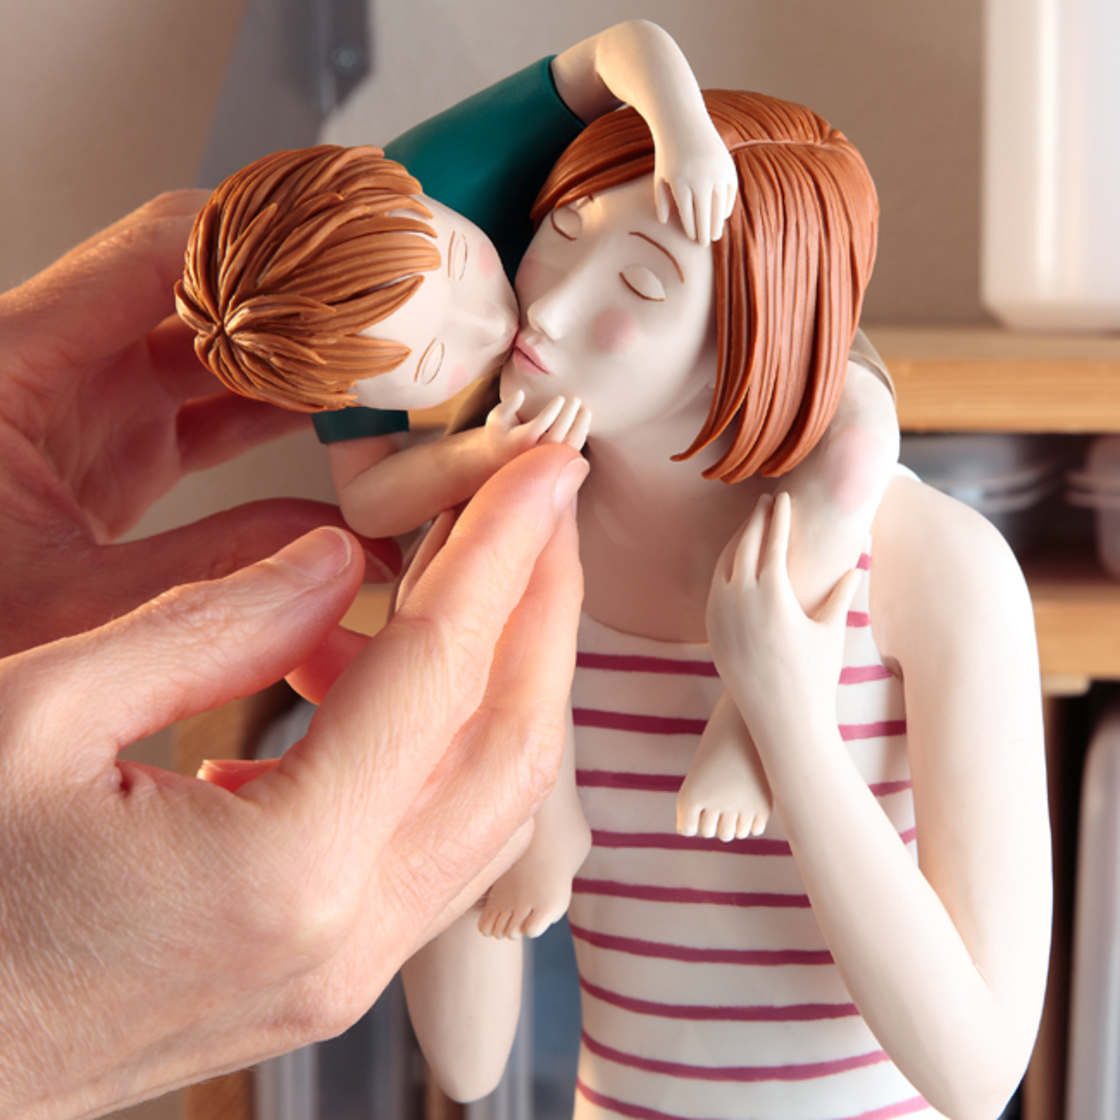 The latest sculpted illustrations by Irma Gruenholz